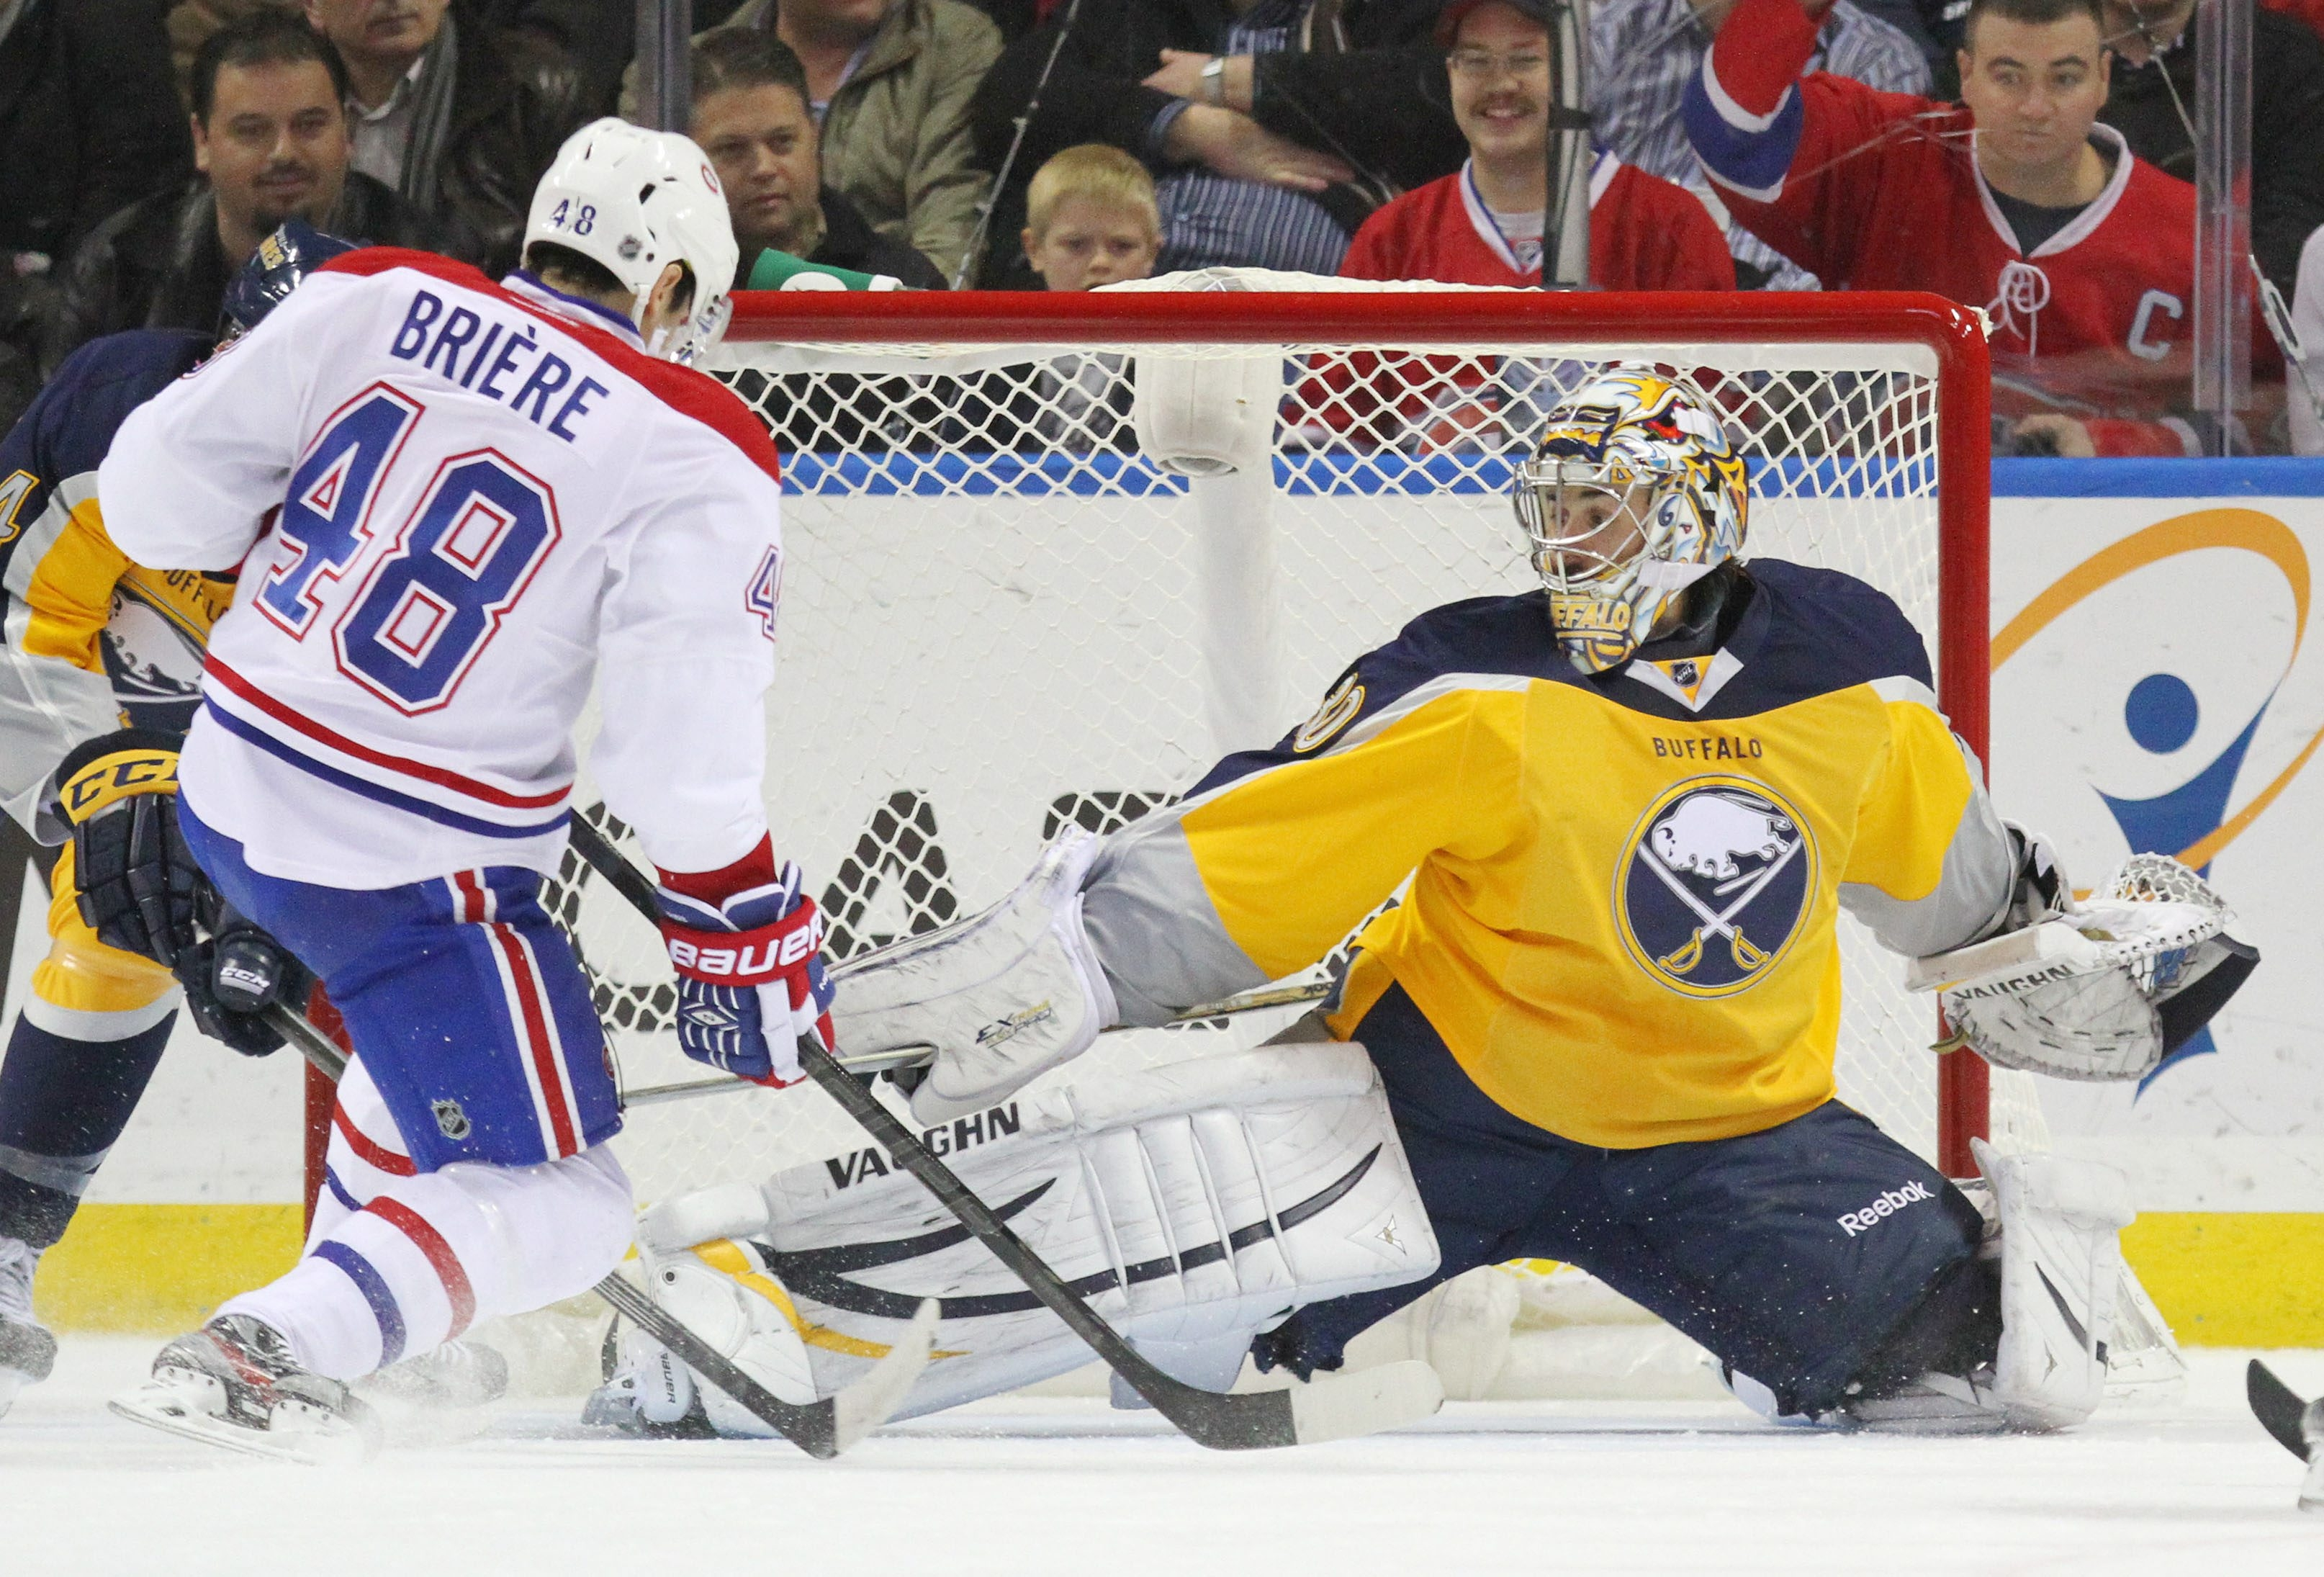 Sabres goalie Ryan Miller makes a save on a shot by Montreal's Daniel Briere during Wednesday night's 3-1 Buffalo loss.